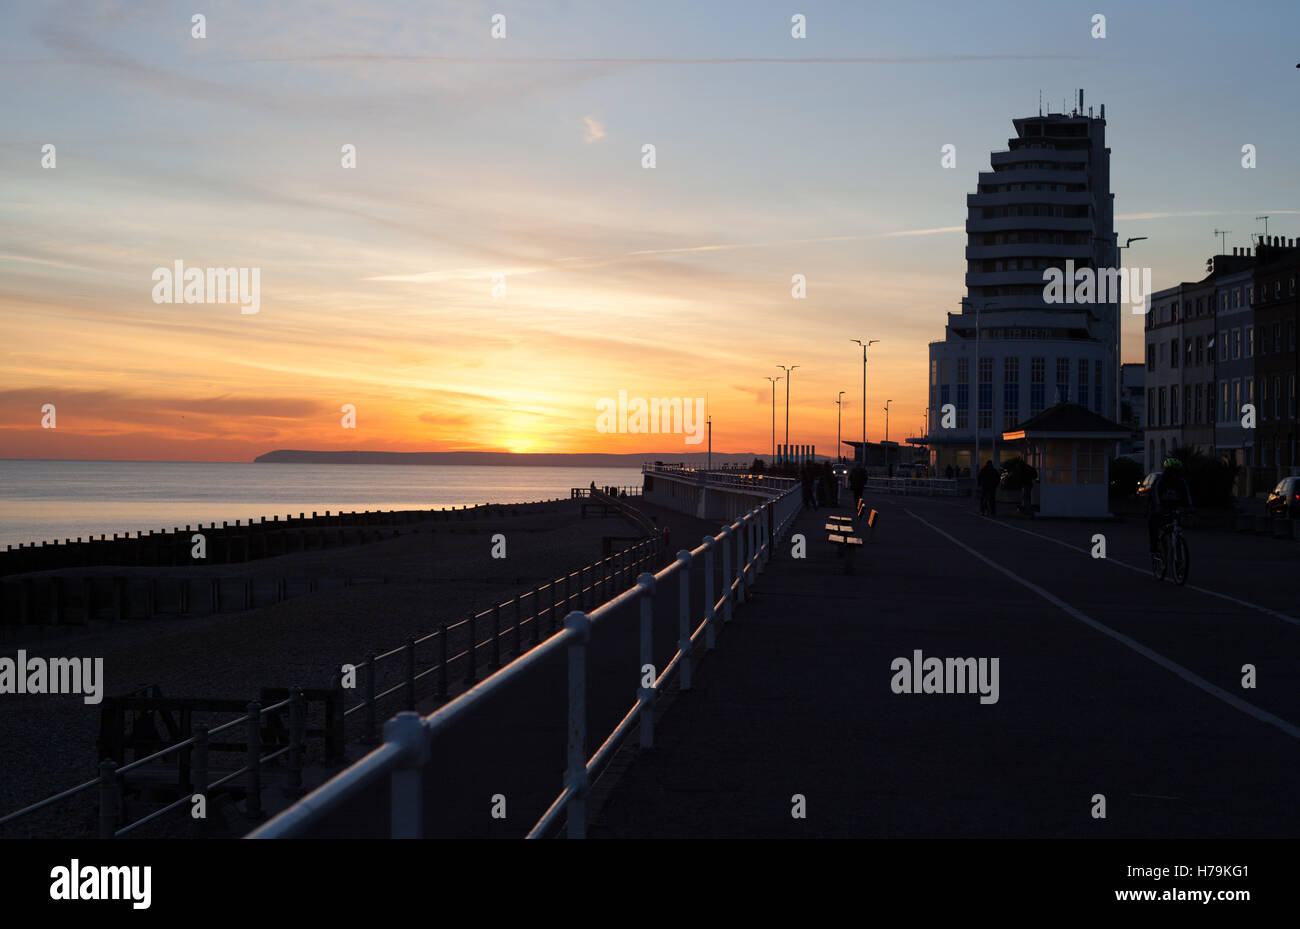 Sunset over the sea and Marine Court built in 1938, St Leonards-on-Sea  East Sussex, UK - Stock Image